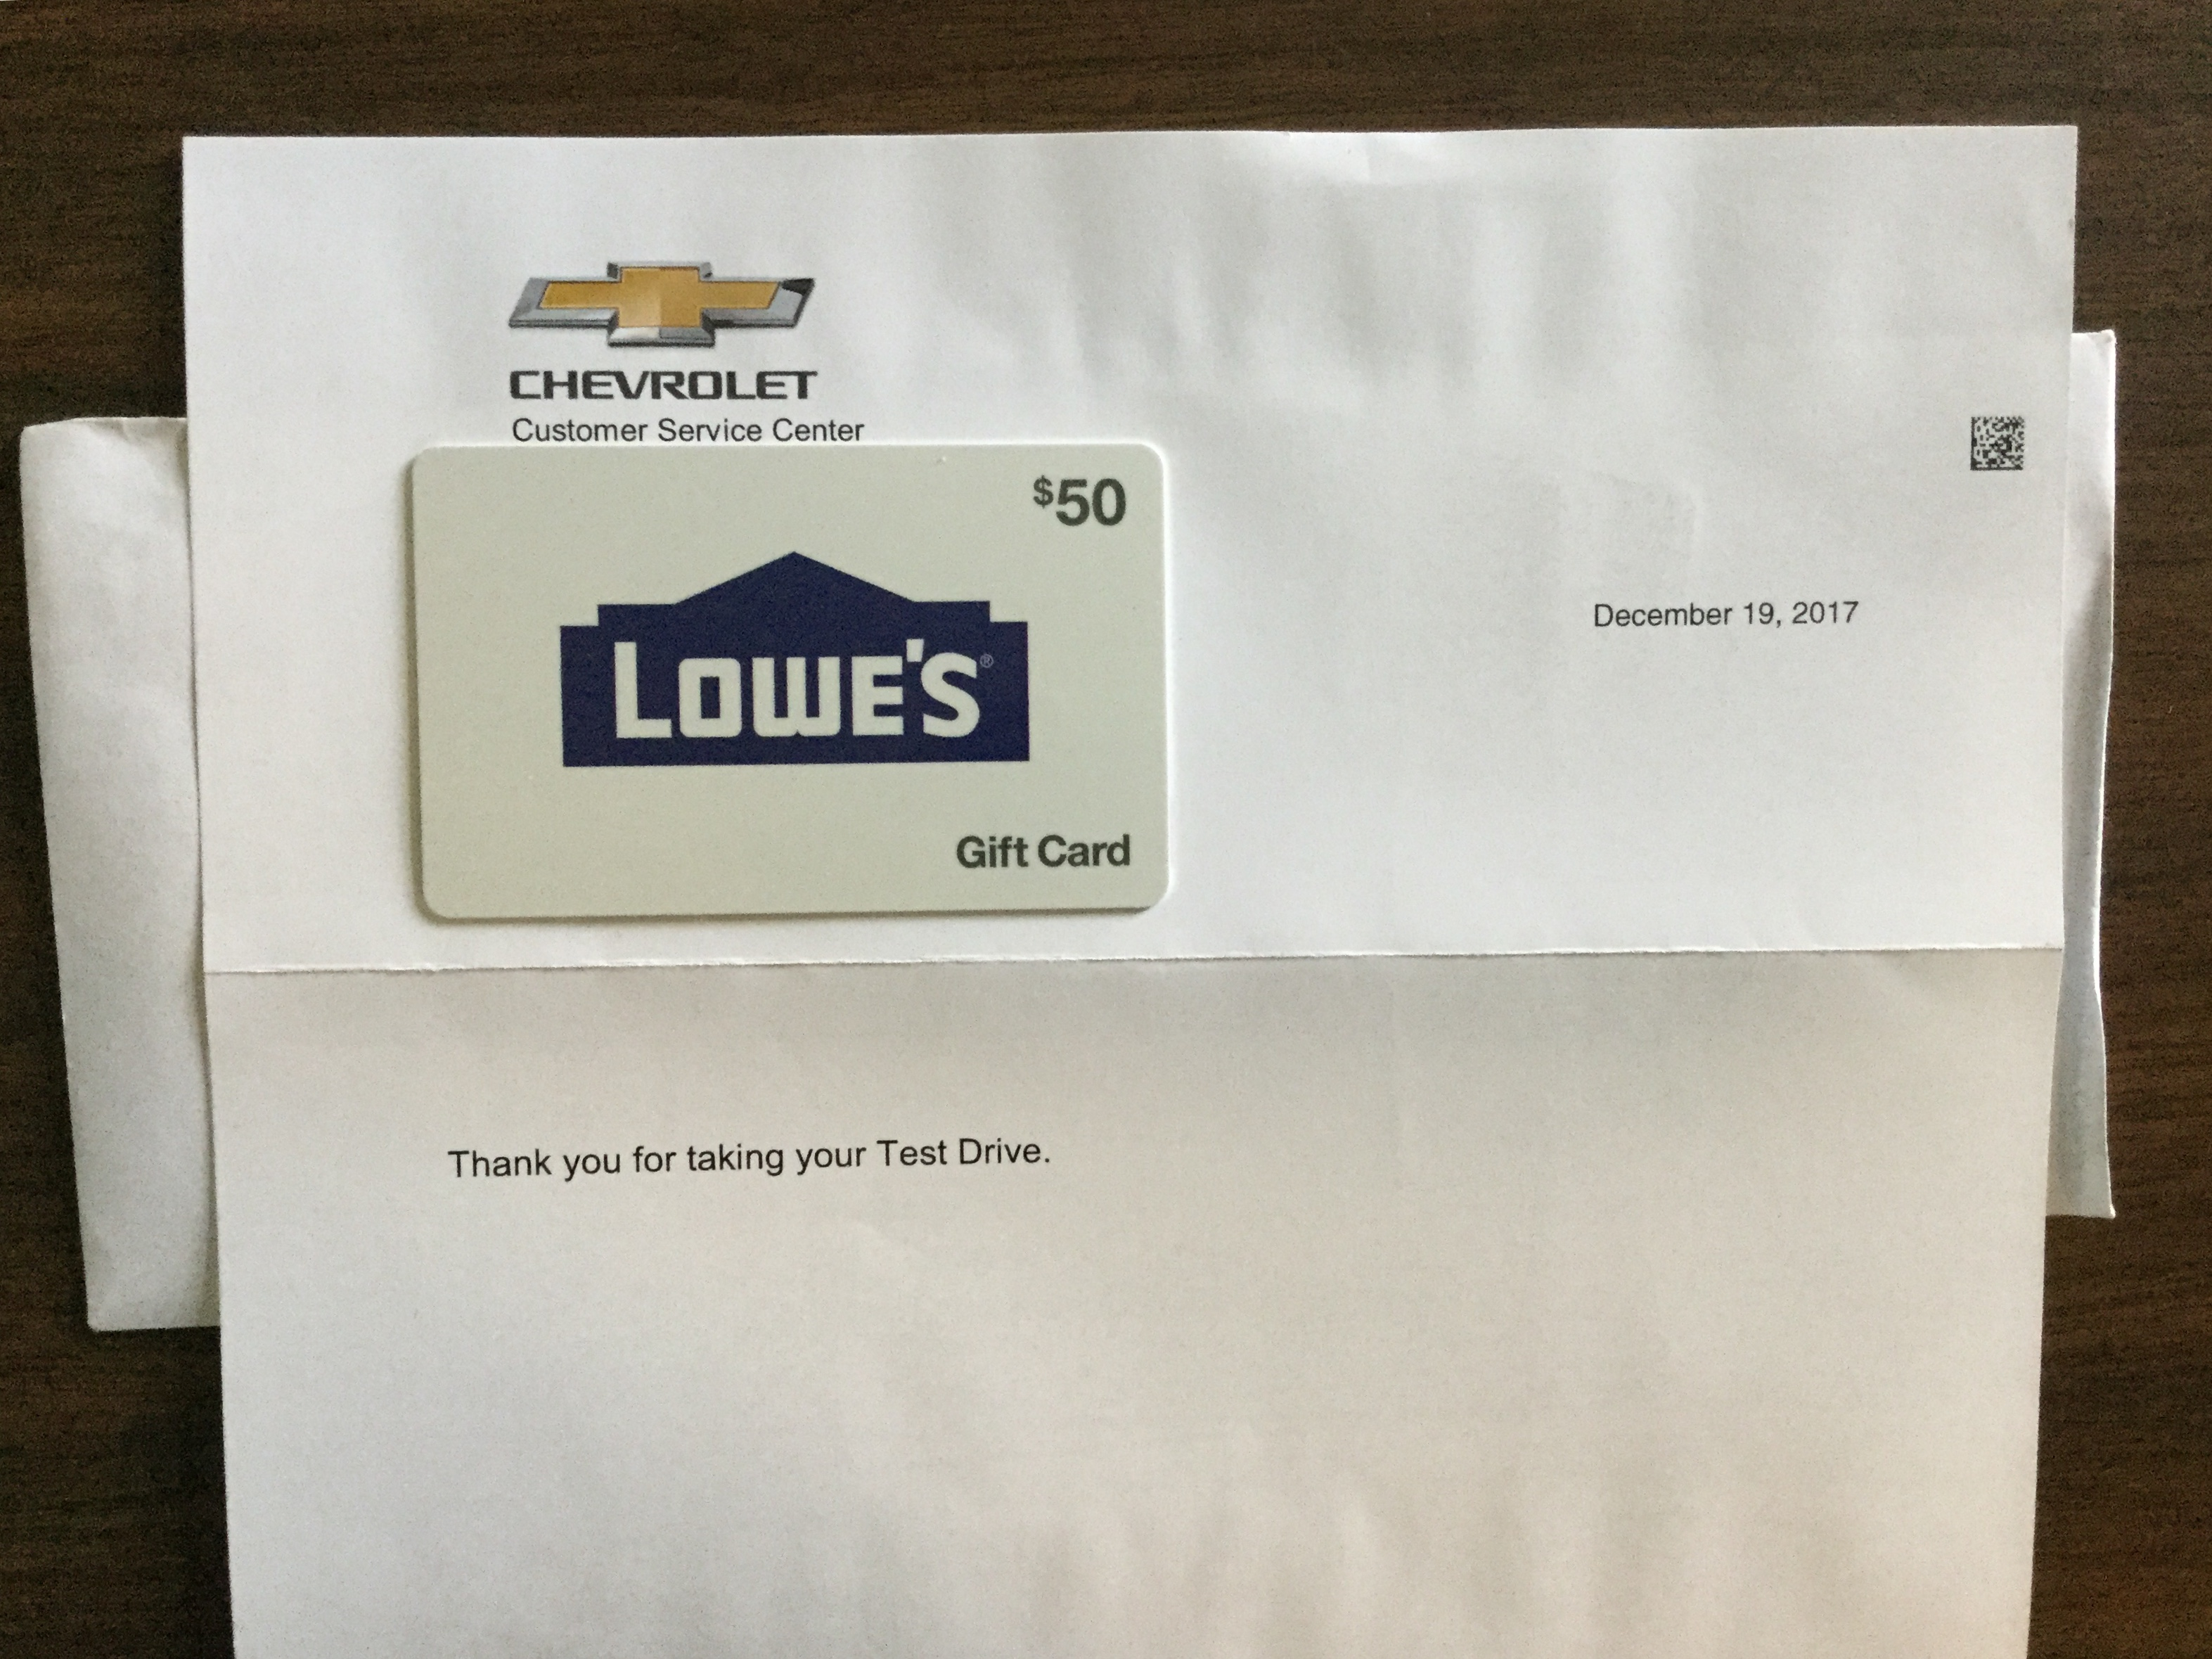 Free $50 Lowe's gift card from Chevrolet test drive